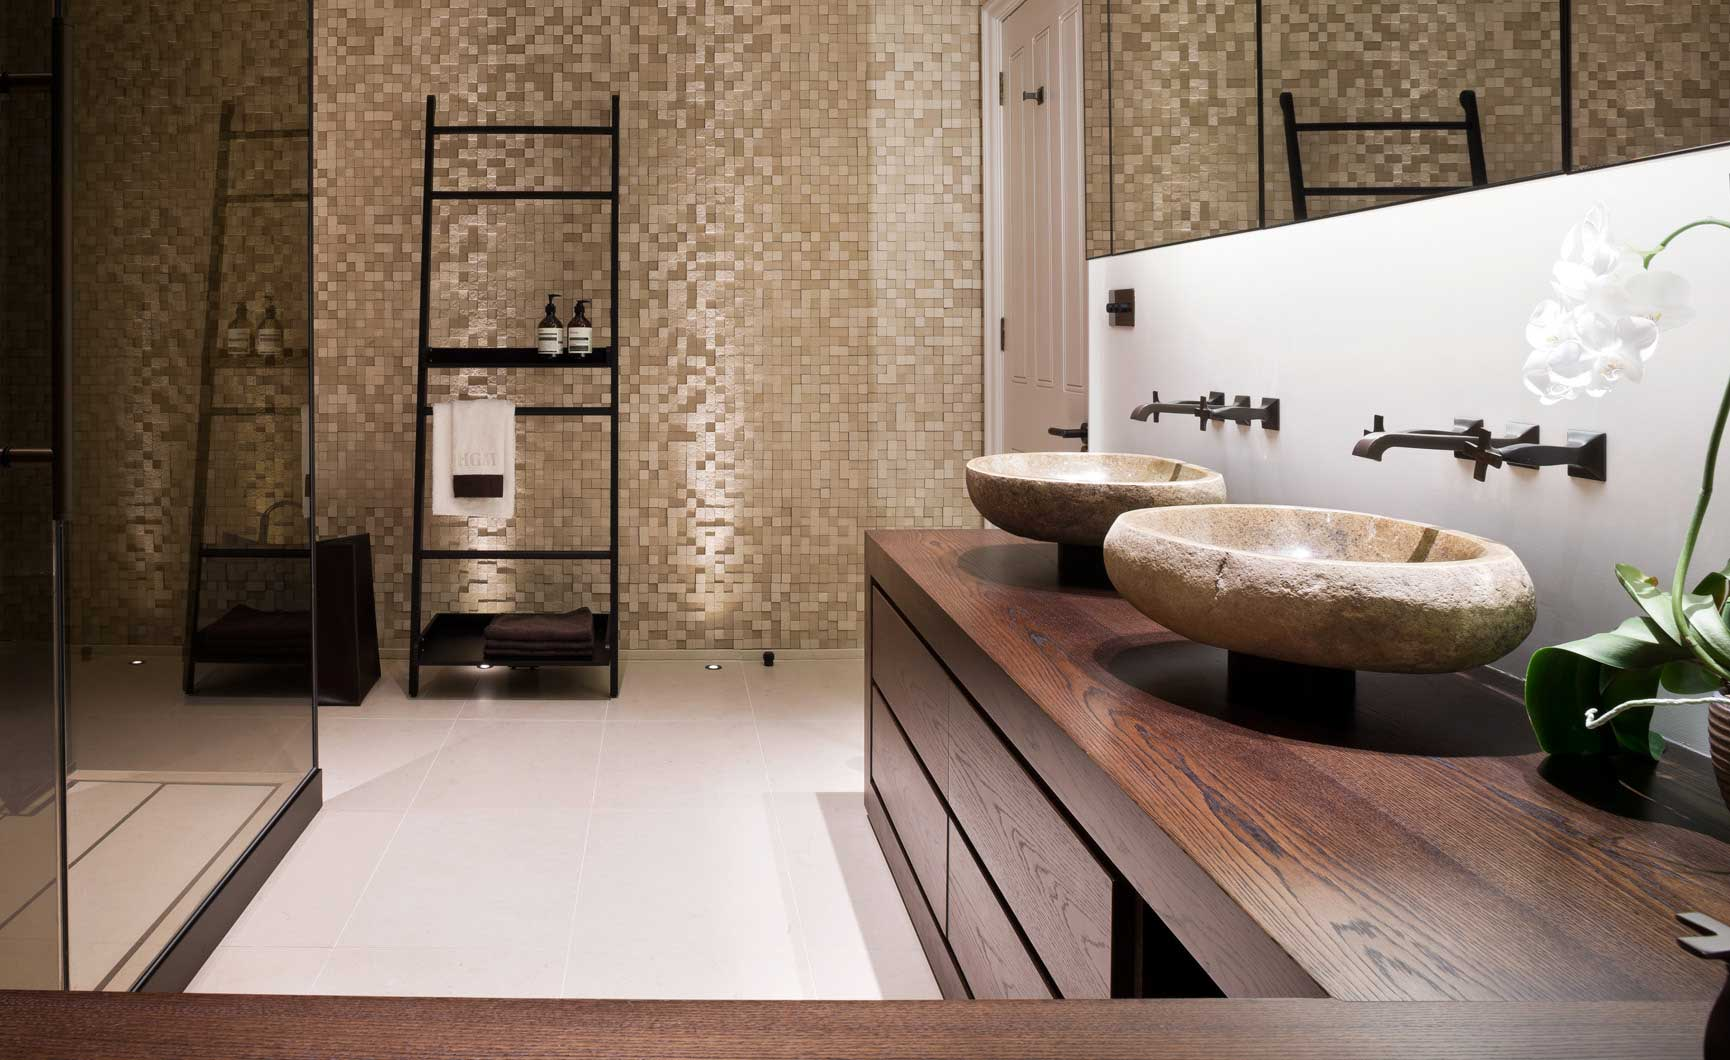 herts home bathroom 14 Hertfordshire Home by Alessandro Isola